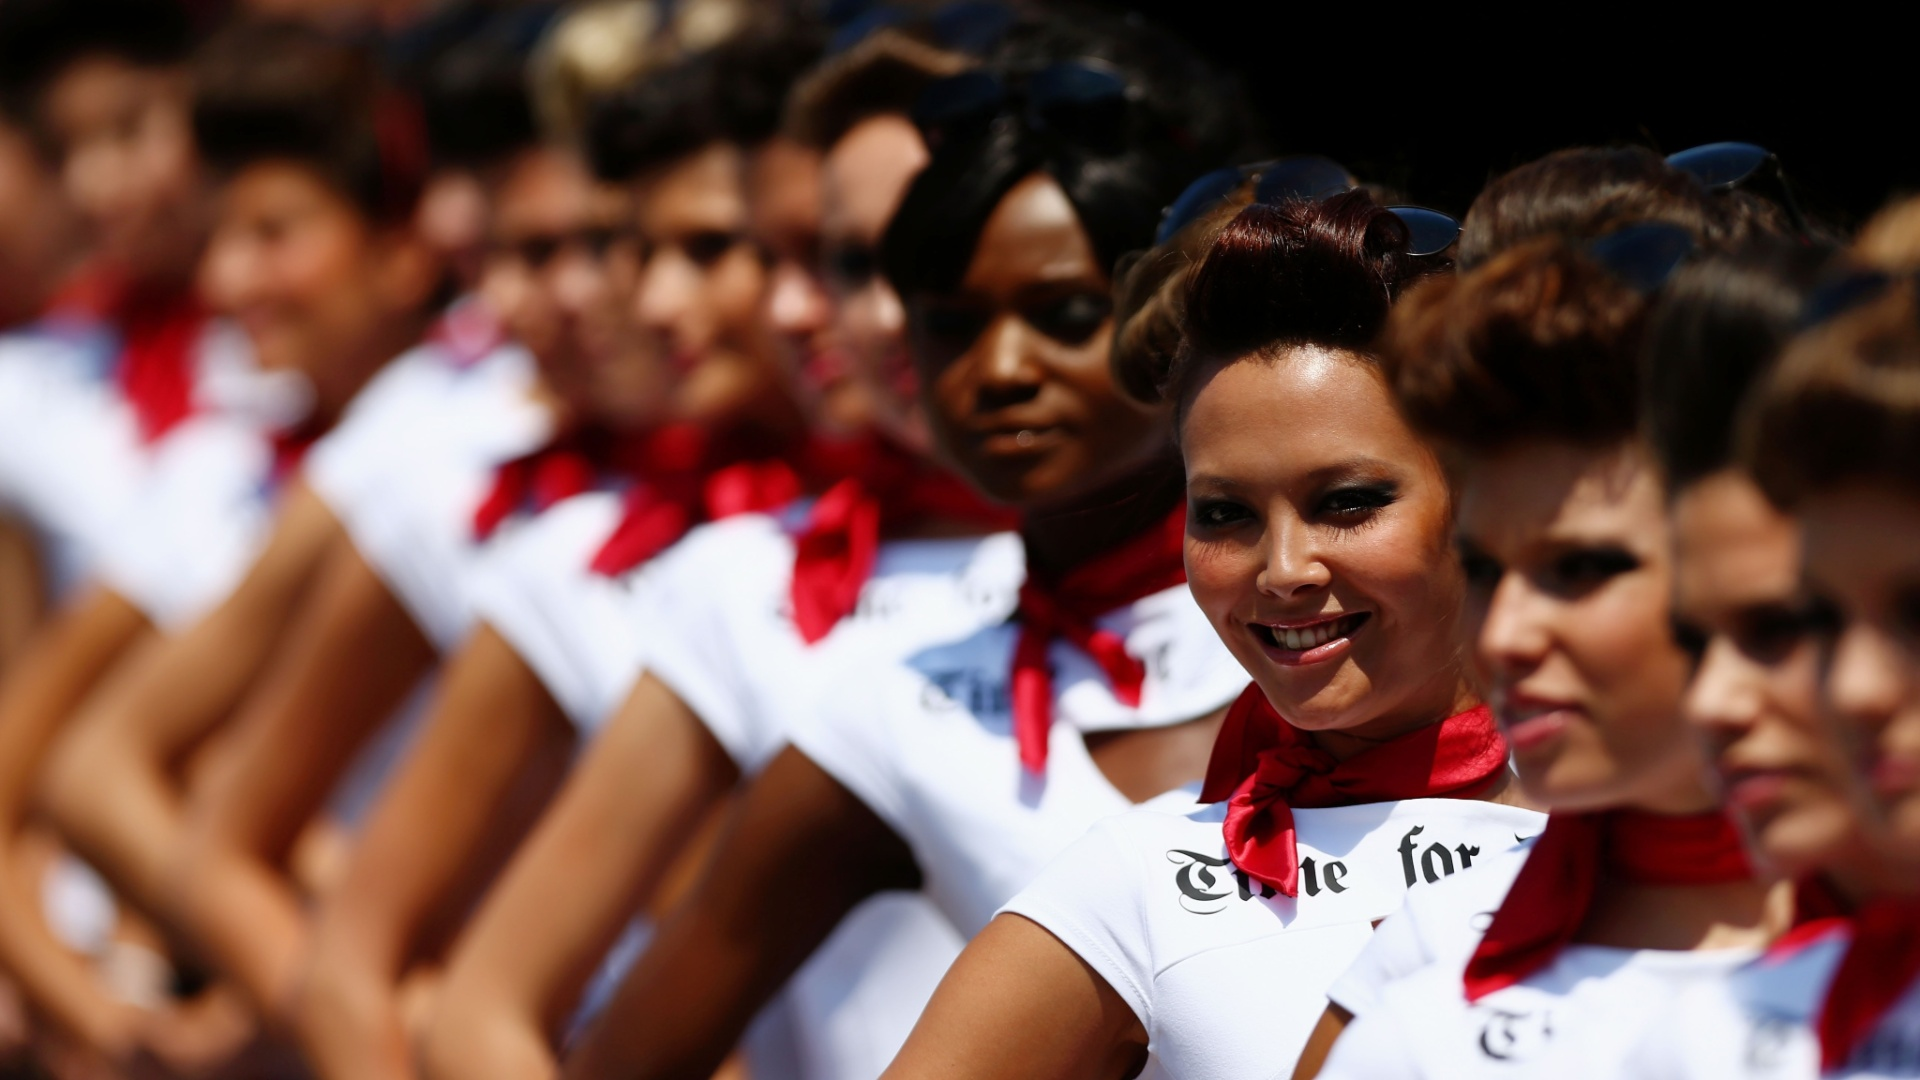 Grid girls se alinham antes do incio do GP de Mnaco de Frmula 1